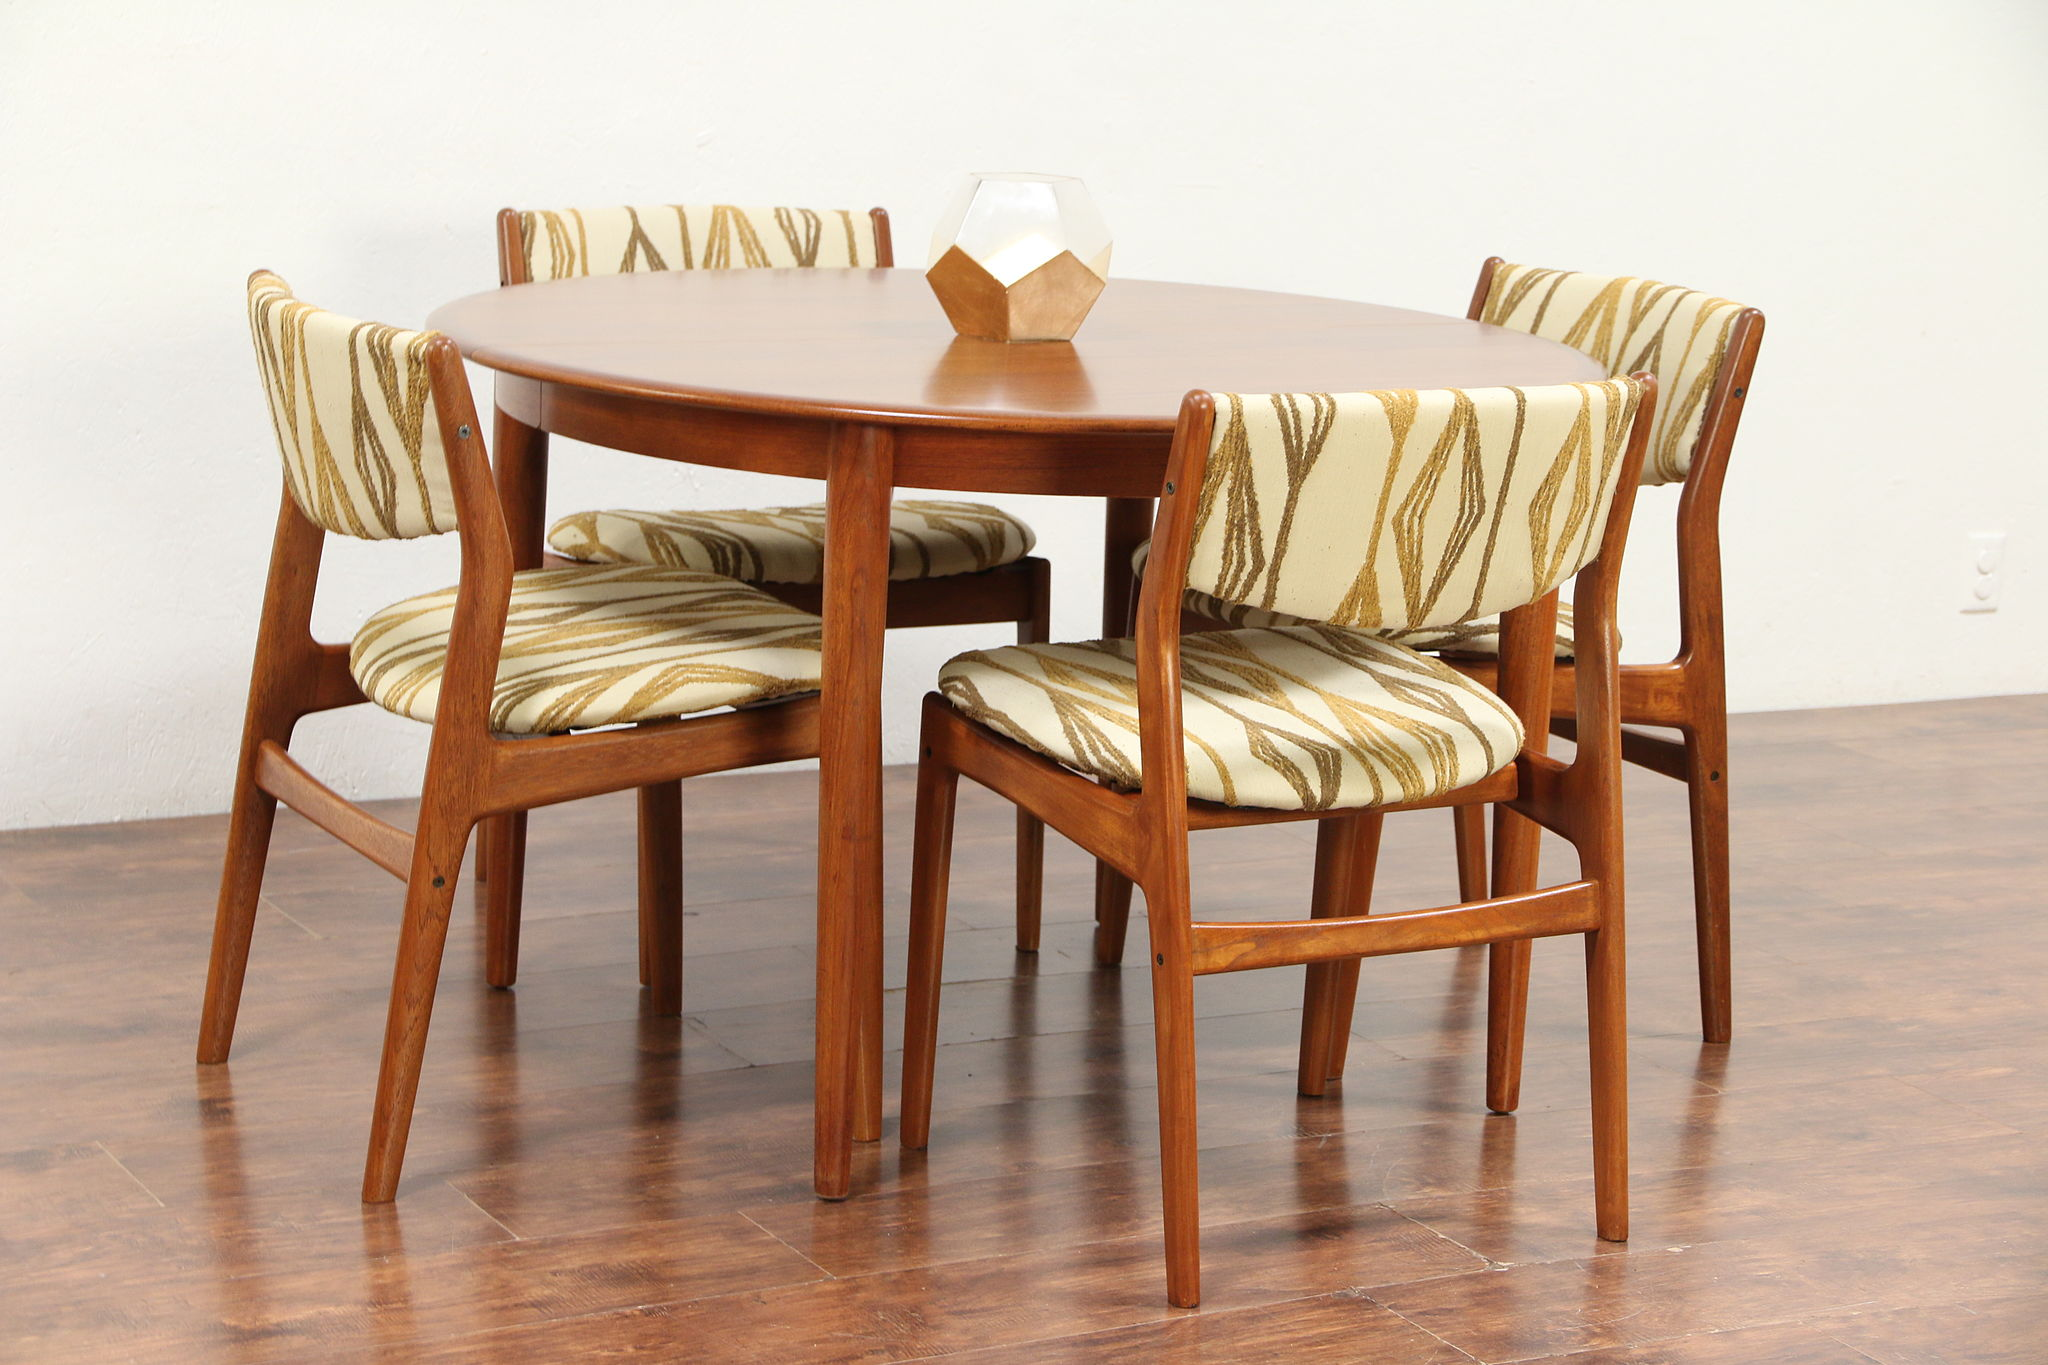 Sold Midcentury Modern Danish Teak Dining Set Table 4 Chairs Glostrup 29717 Harp Gallery Antiques Furniture